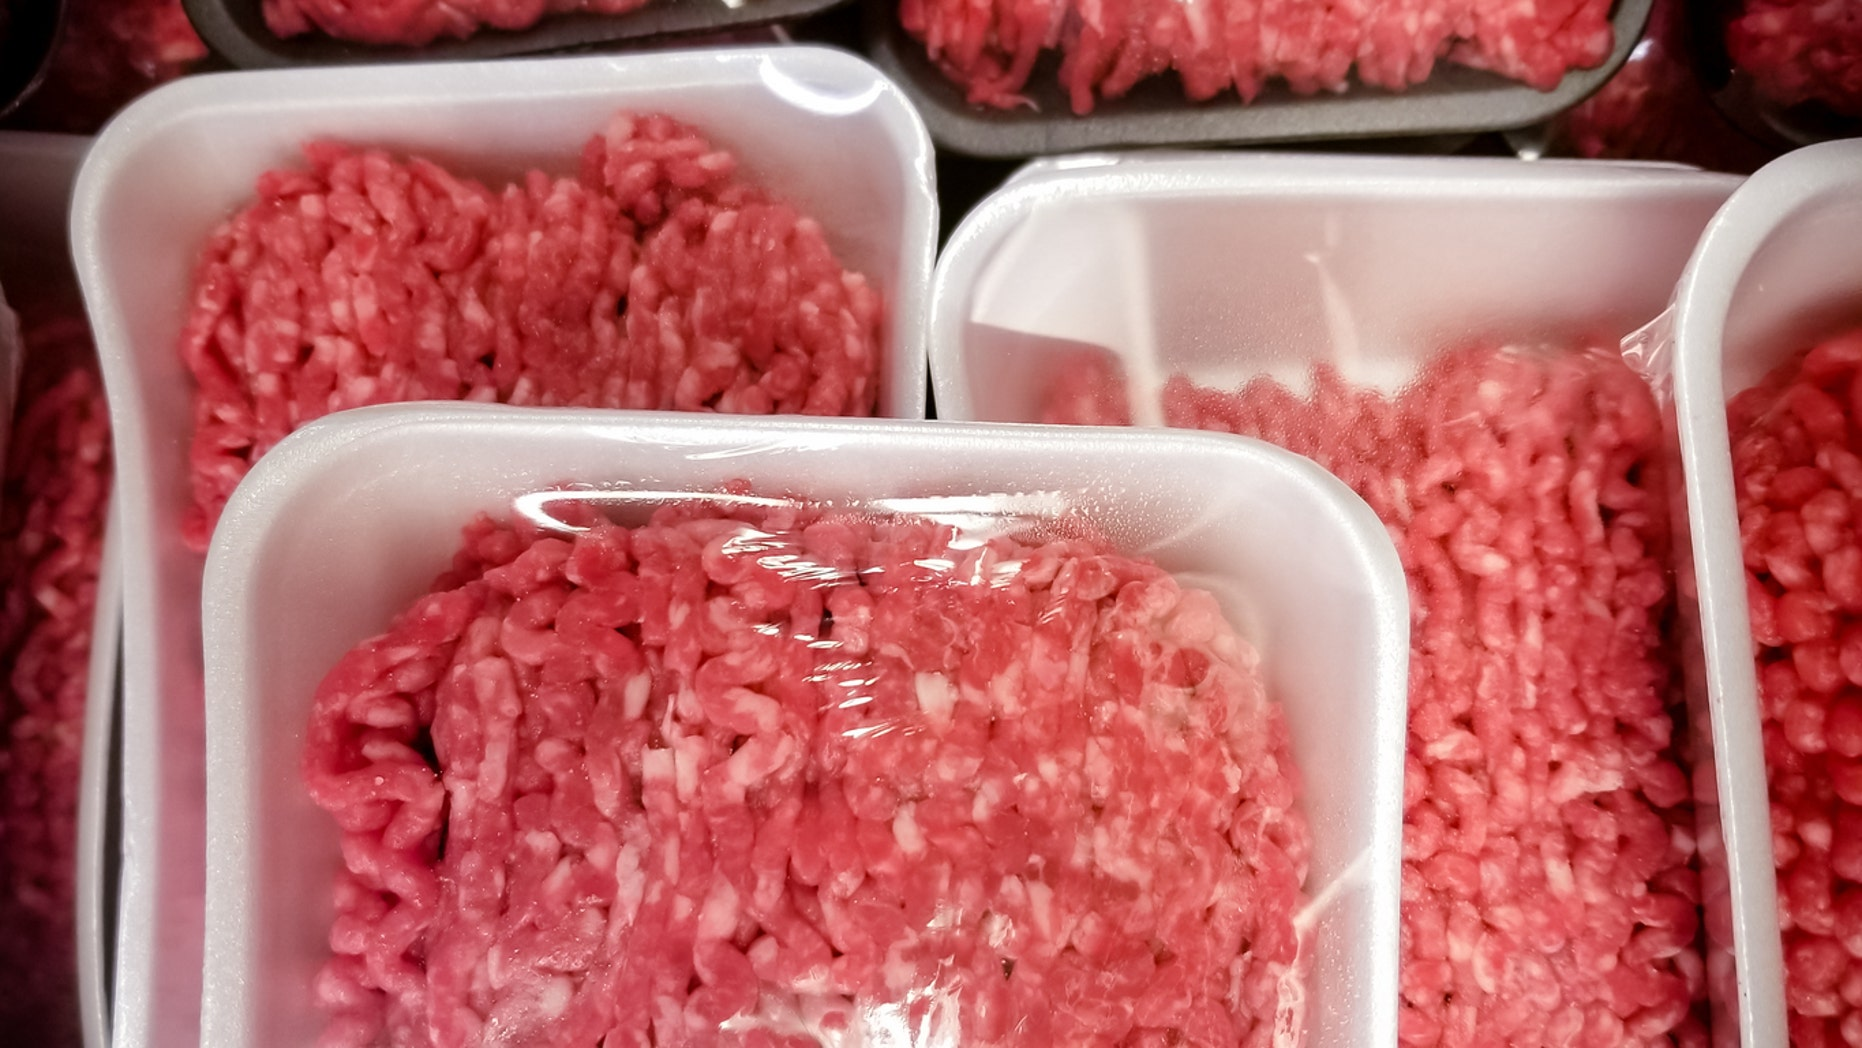 Westlake Legal Group f985cdb8-beef_istock E. coli outbreak likely linked to ground beef, CDC says fox-news/health/infectious-disease/outbreaks fox-news/health/infectious-disease/foodborne-illness fox news fnc/health fnc article Alexandria Hein 64fb4c71-4868-5b3f-a4ee-8d67b67781ad